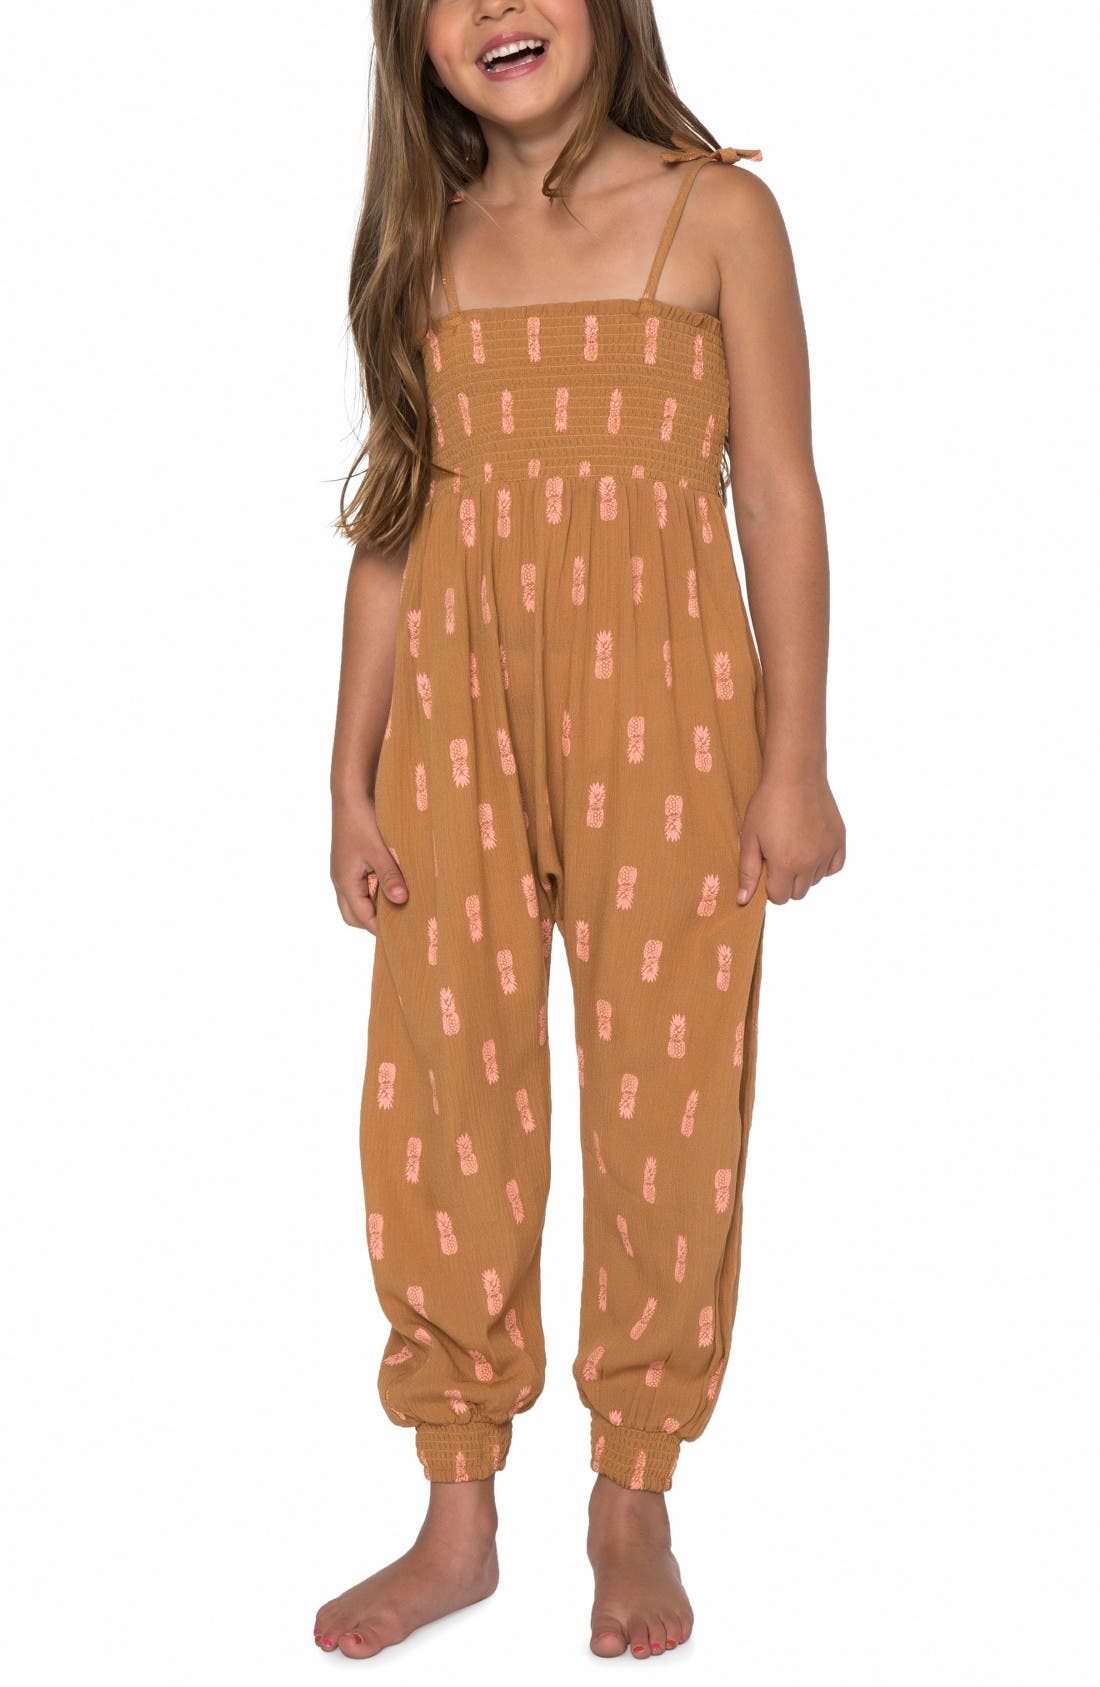 Alternate Image 1 Selected - O'Neill Romper (Toddler Girls & Little Girls)